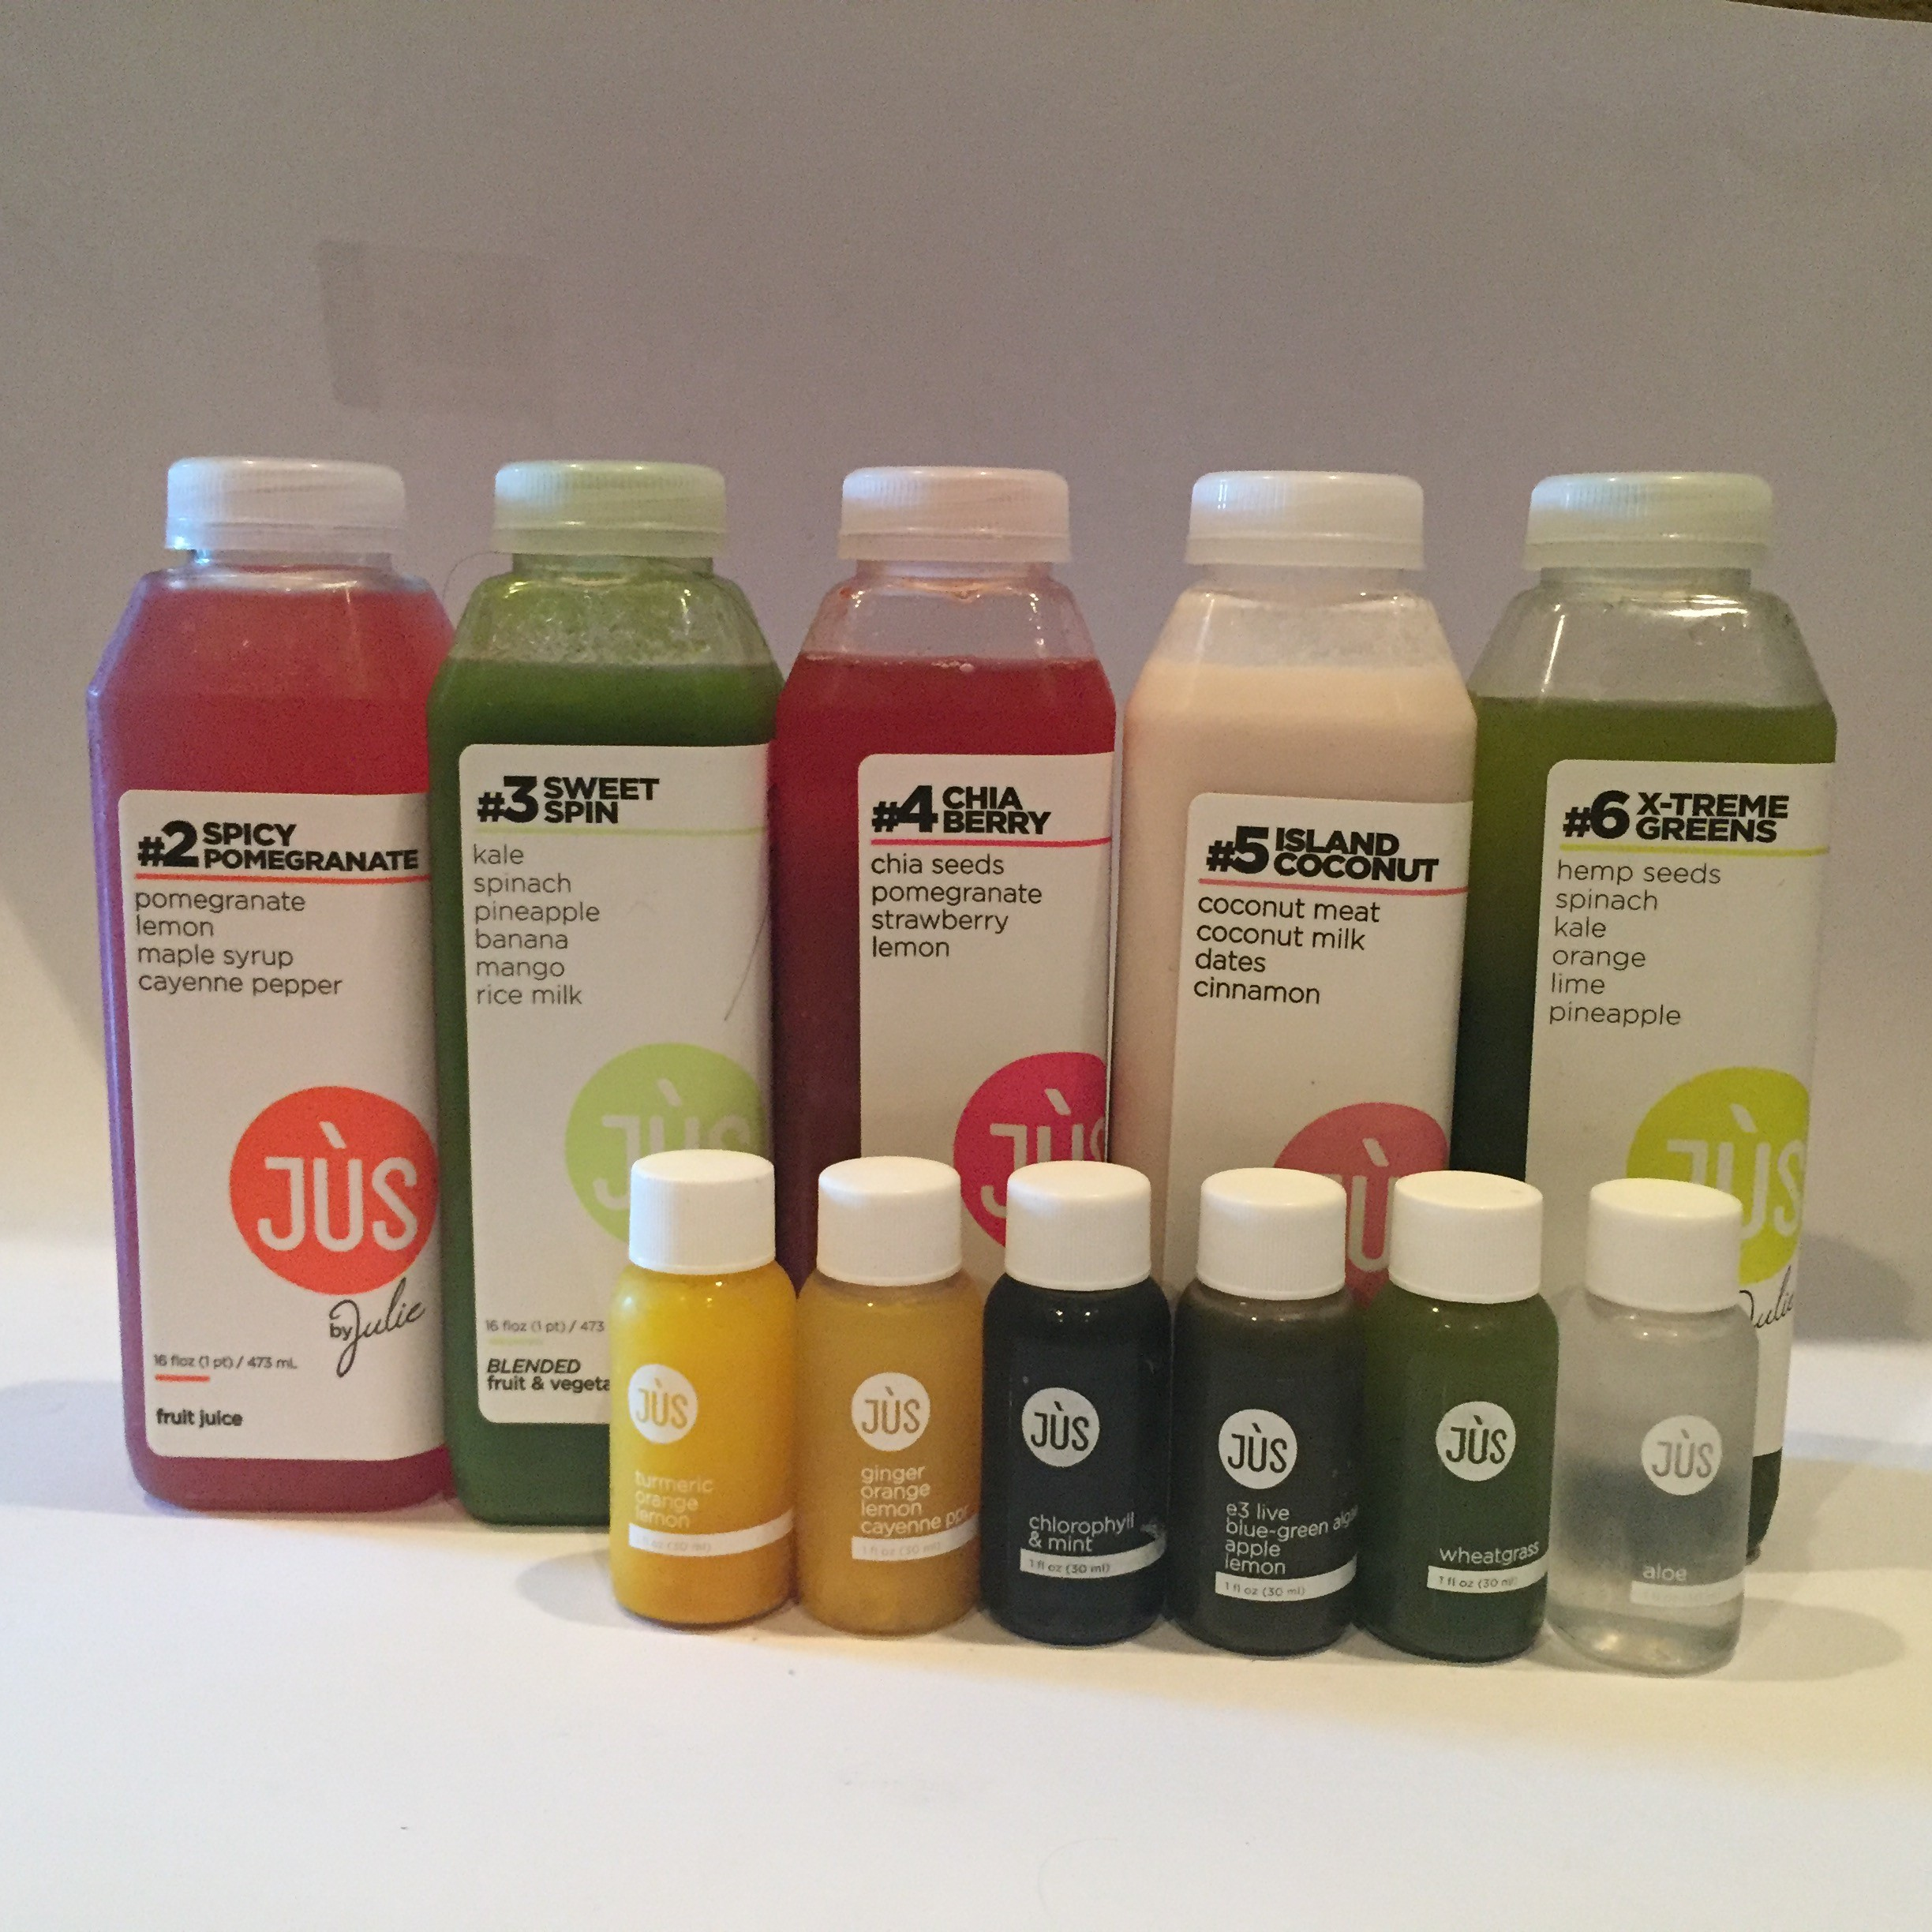 Juicing the right way with JUS by Julie